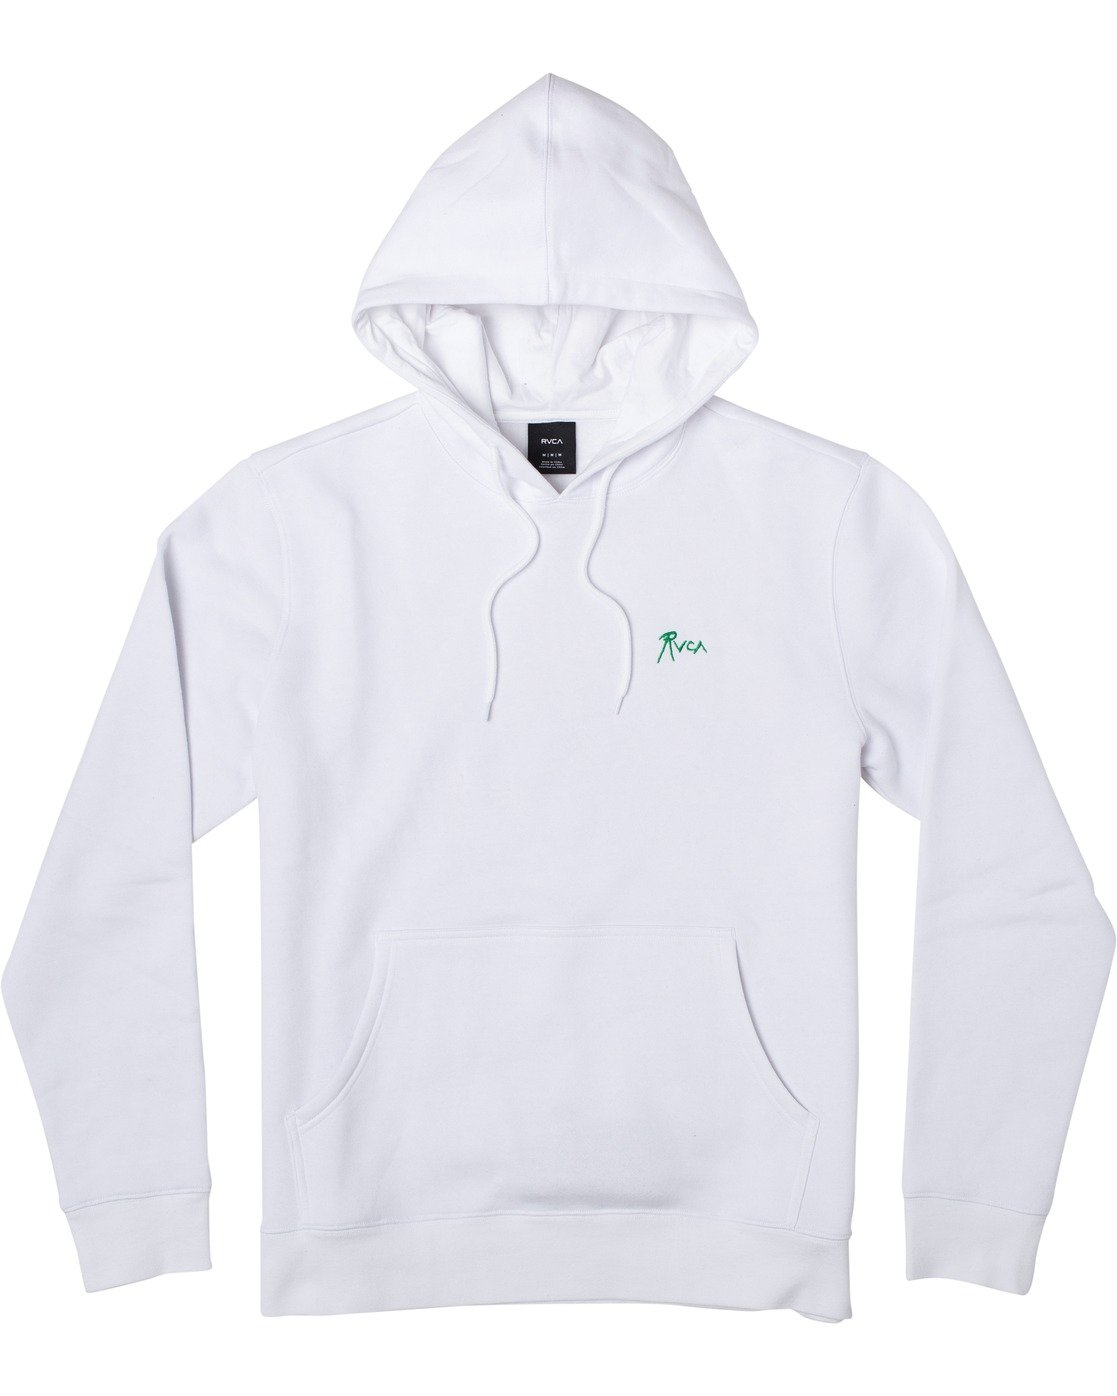 0 Stacey Rozich The Gorgeous Hussy - Hoodie for Men White U1HORCRVF0 RVCA